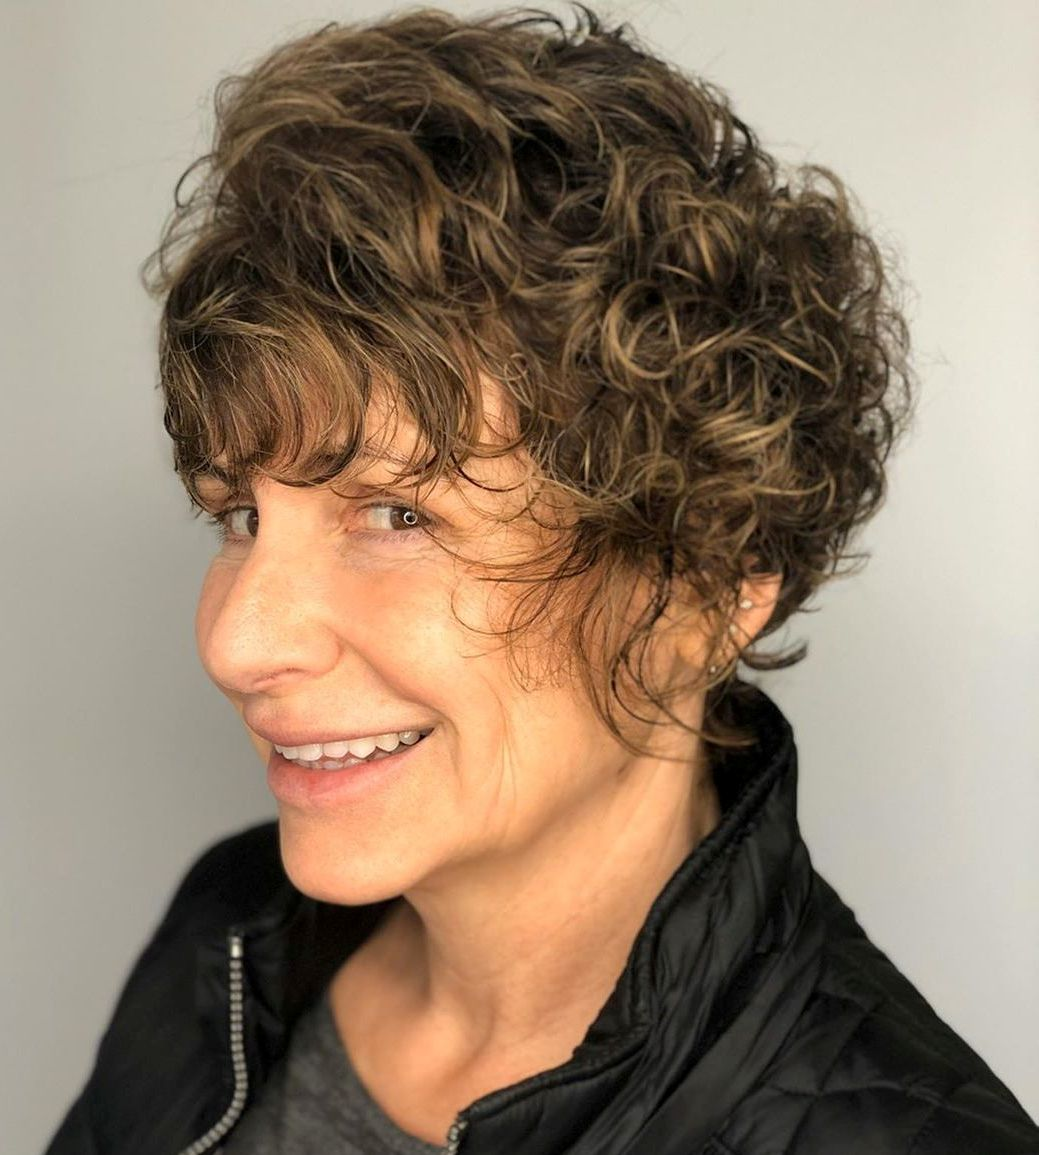 Over 50 Hairstyle for Short Curly Hair